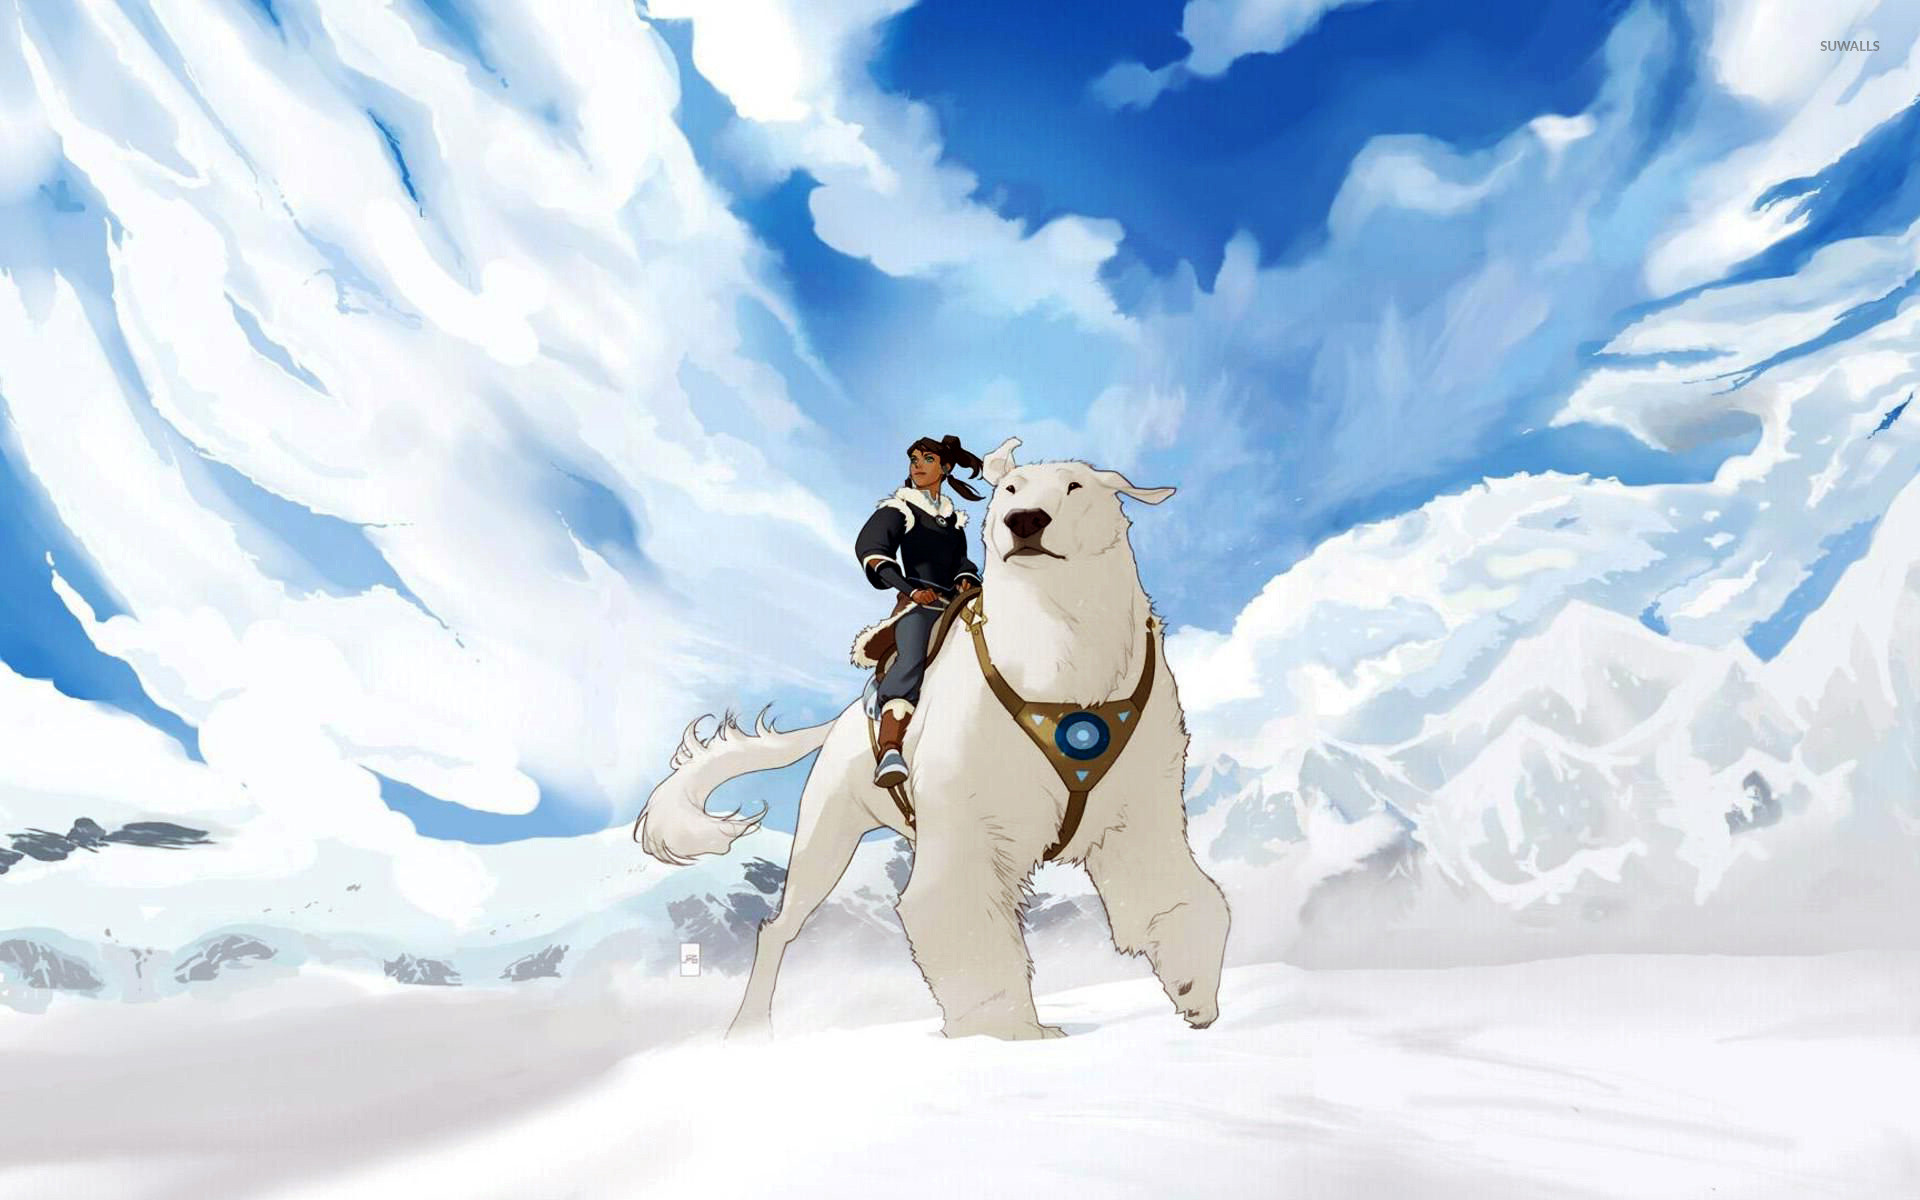 1920x1200 Korra on Naga wallpaper - Anime wallpapers - #13607